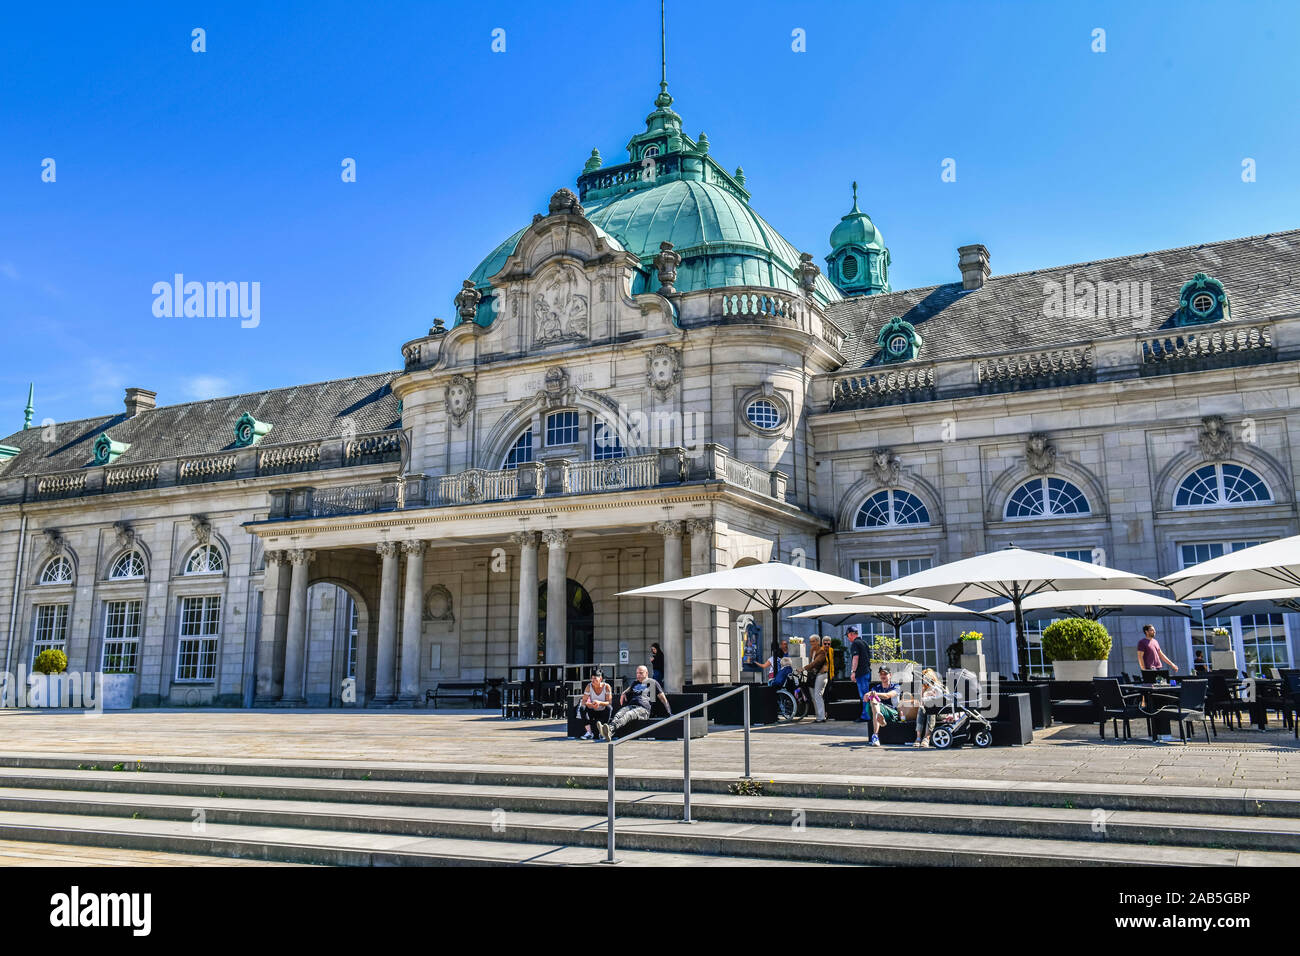 Kaiserpalais, Kurpark, Bad Oeynhausen, Nordrhein-Westfalen, Deutschland Stock Photo